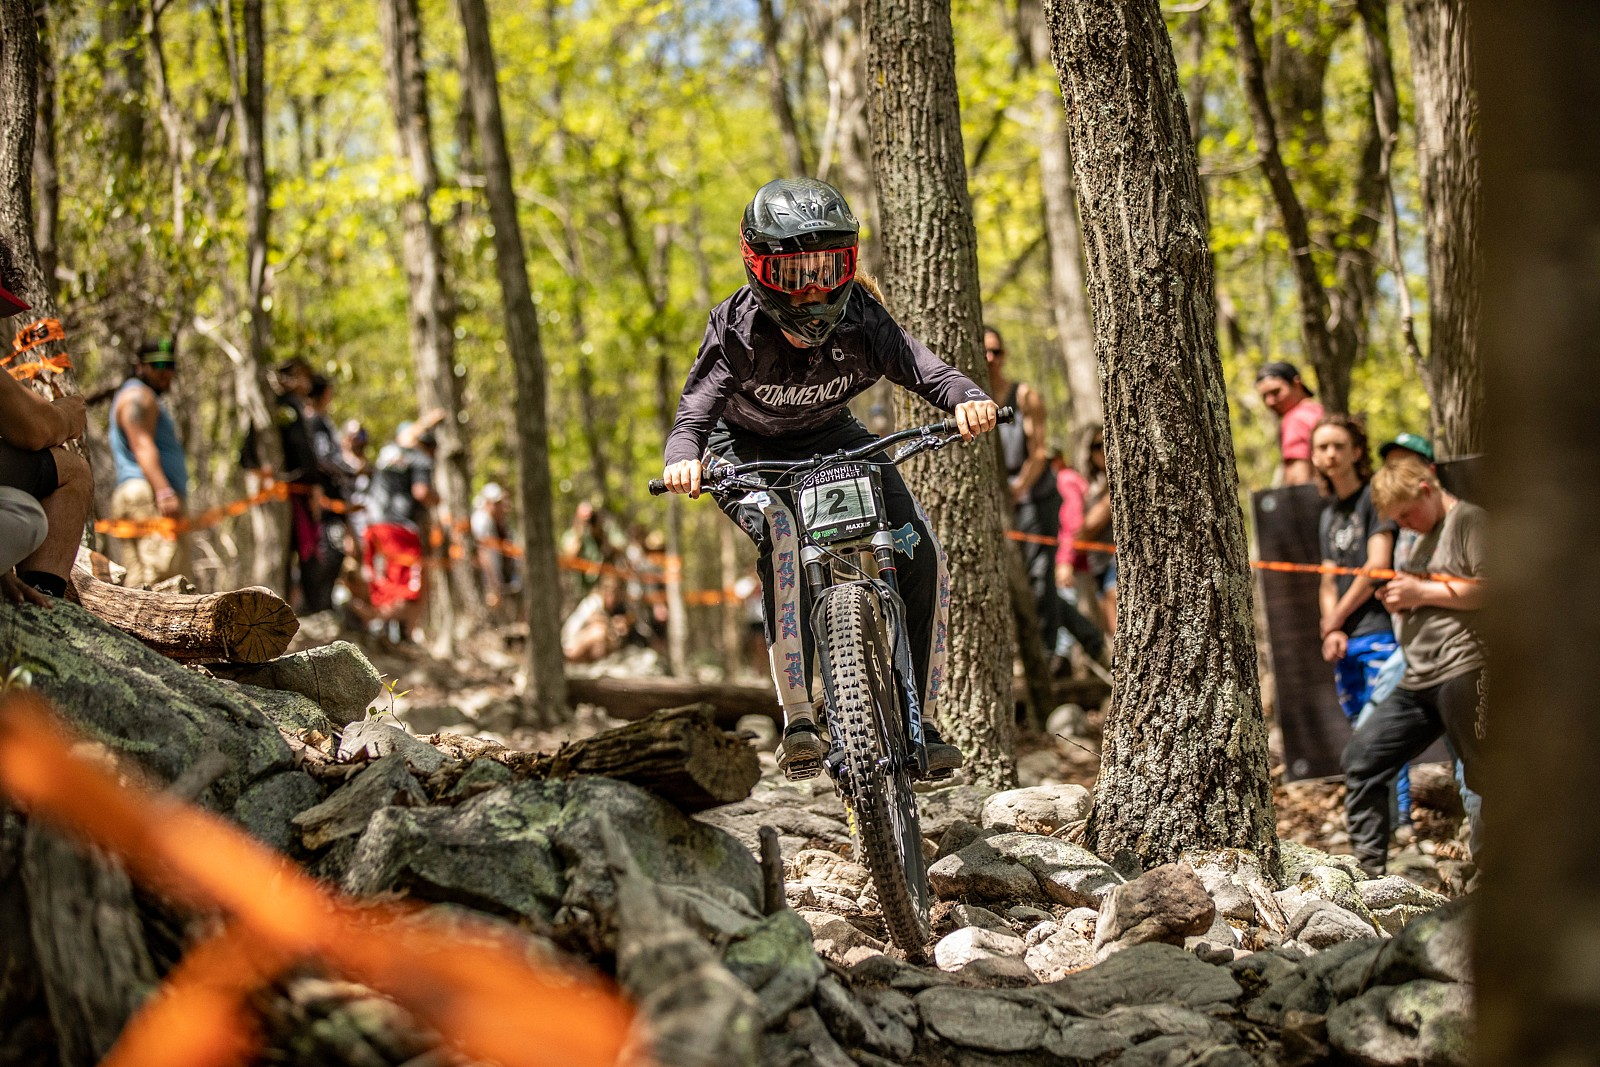 Frida Ronning - 1st Place, Downhill Southeast Round 1 - Massanutten - JackRice - Mountain Biking Pictures - Vital MTB